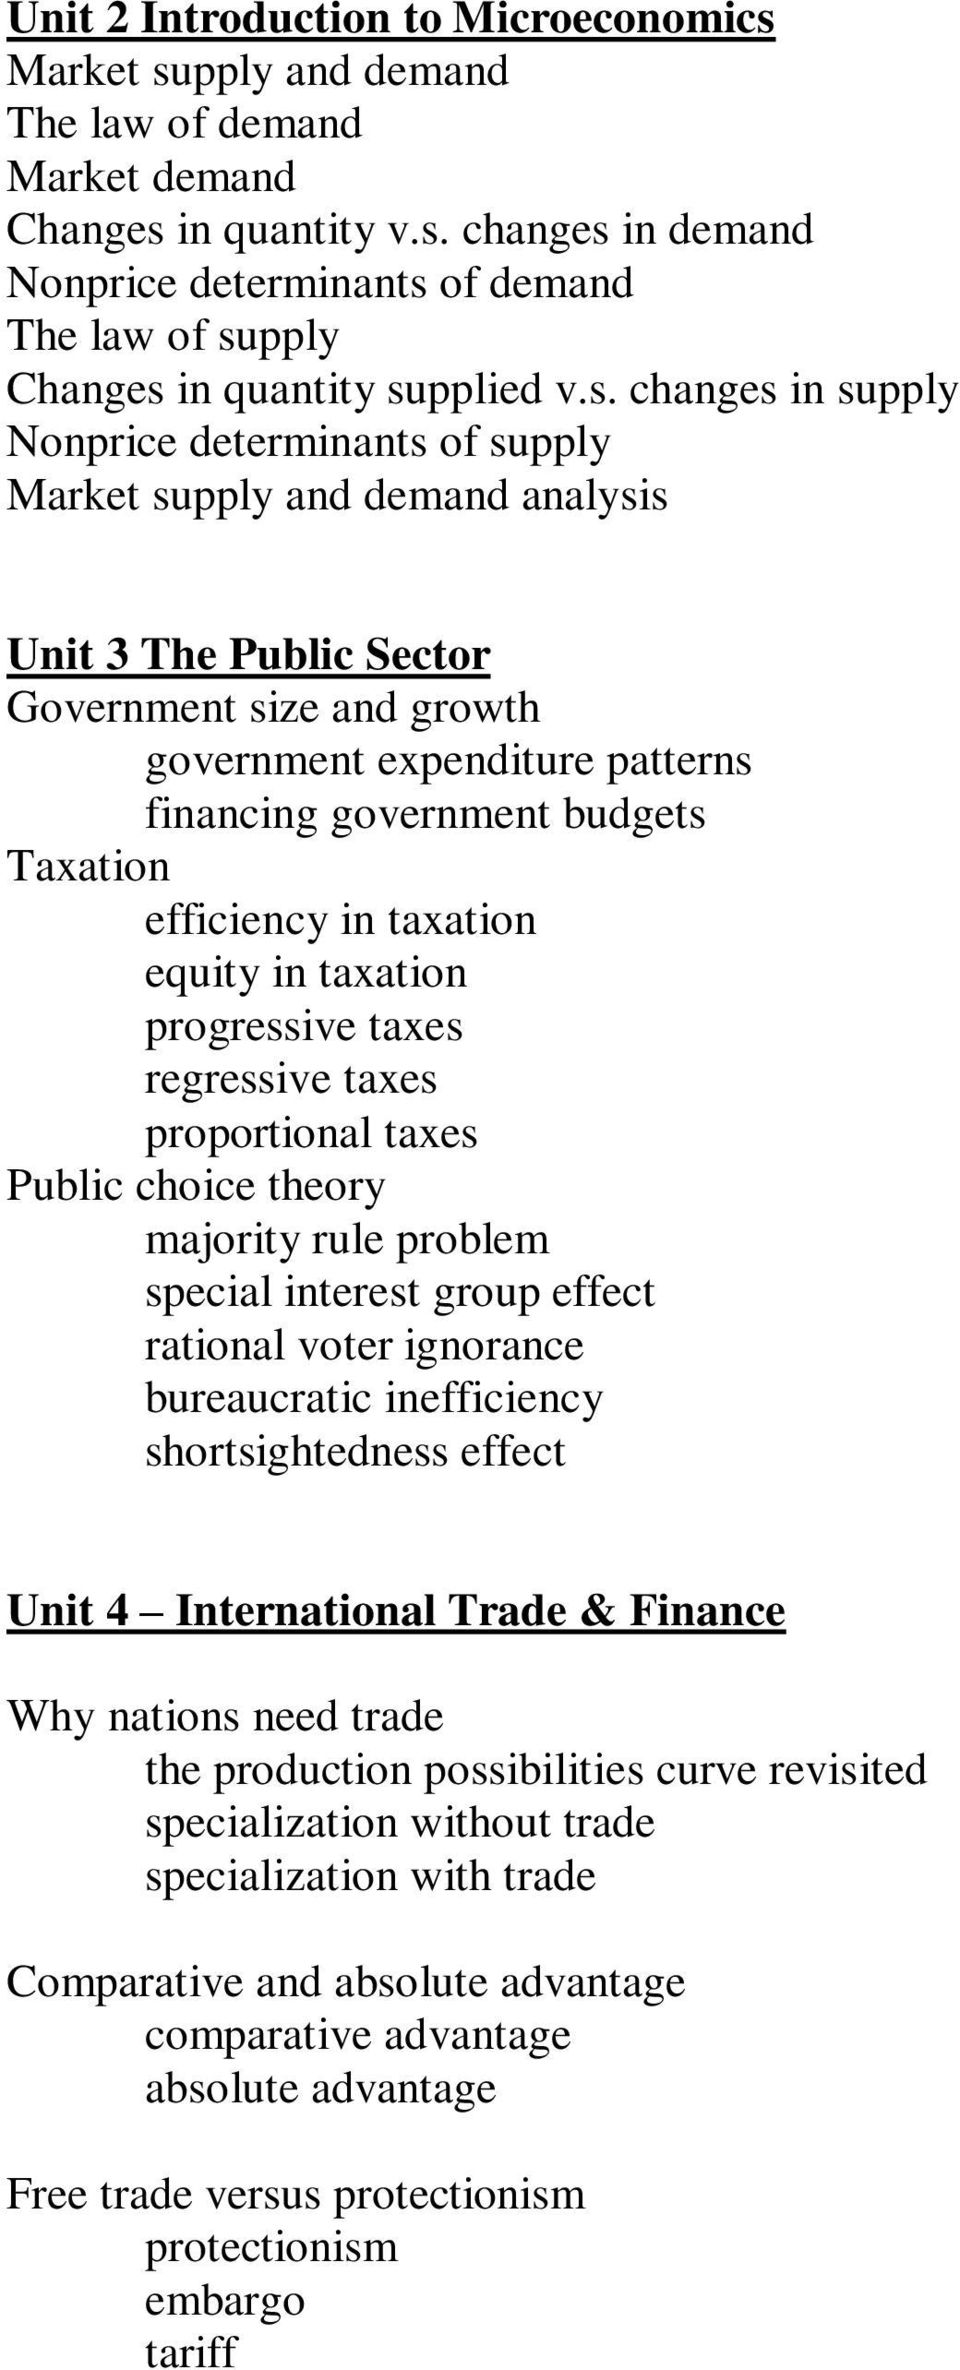 Taxation efficiency in taxation equity in taxation progressive taxes regressive taxes proportional taxes Public choice theory majority rule problem special interest group effect rational voter